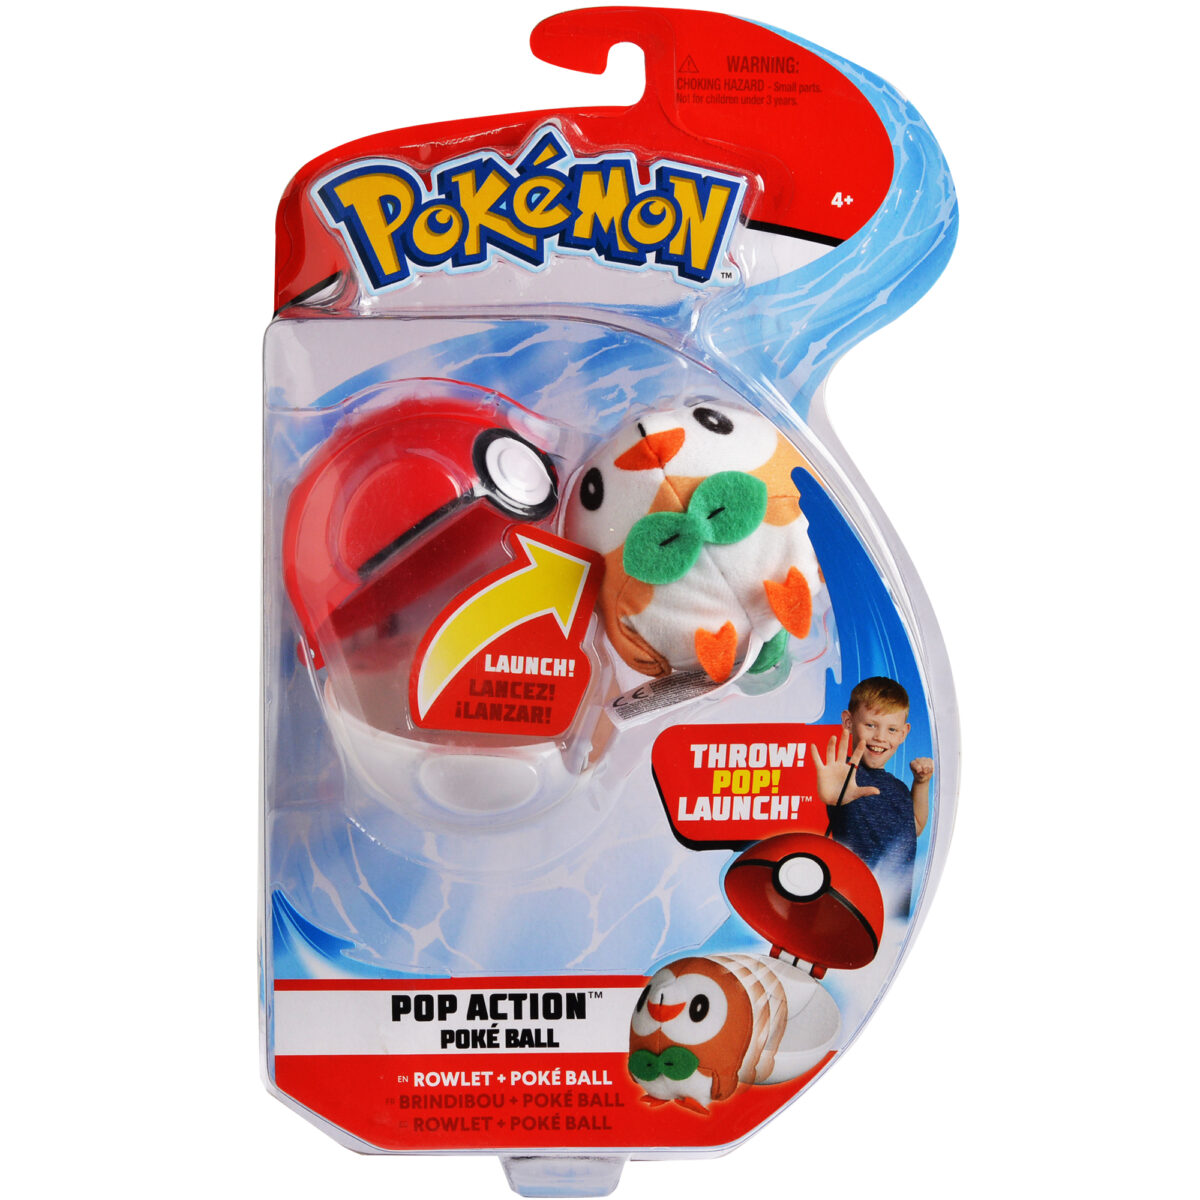 Picture of the Launchable Rowlet toy